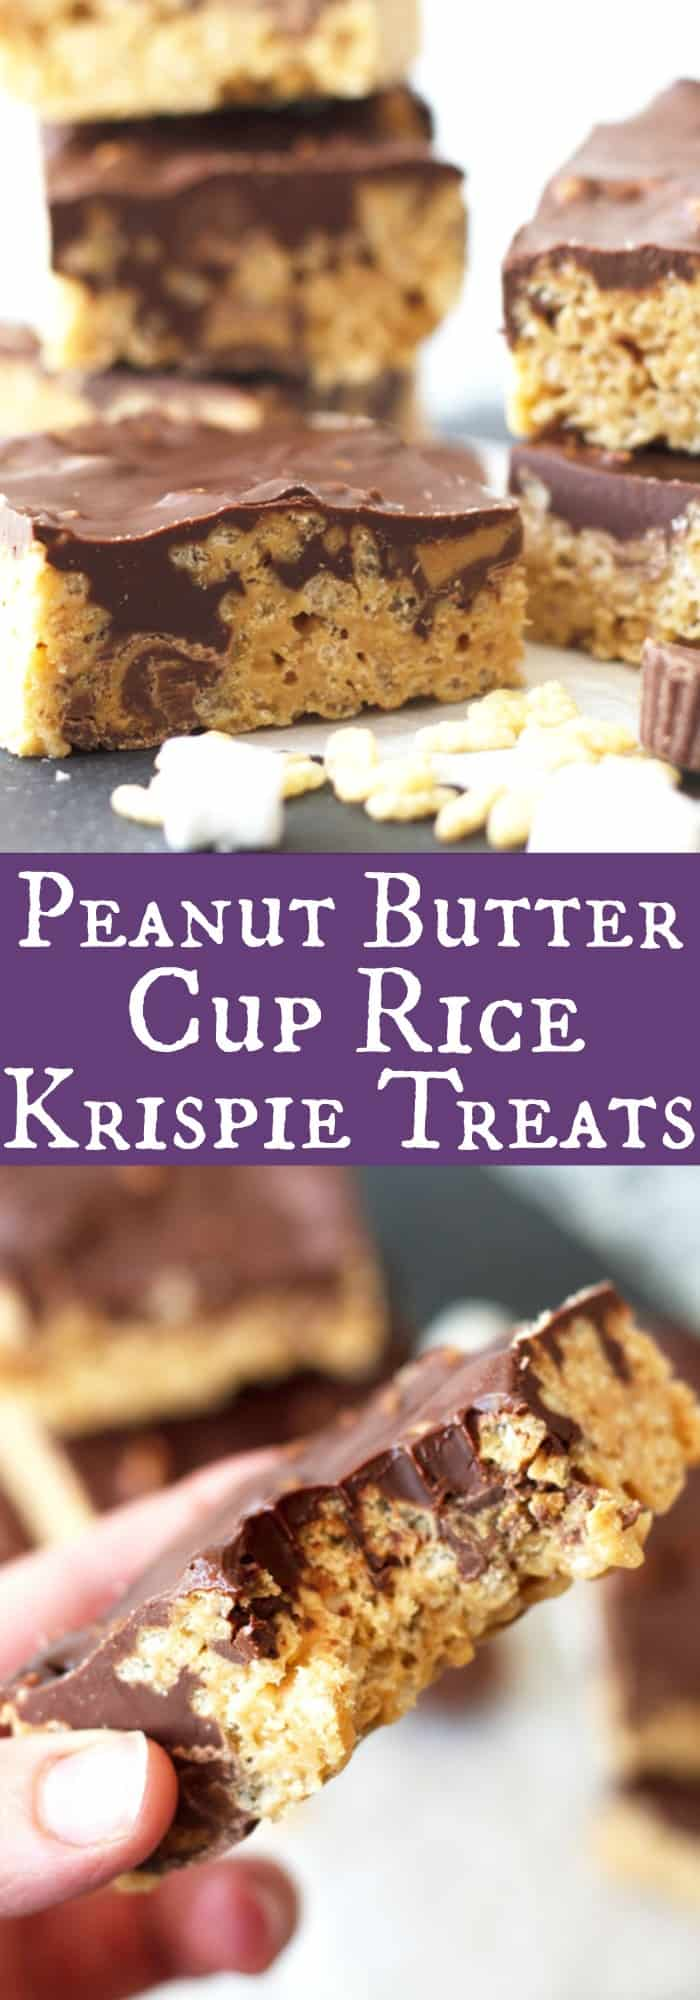 Peanut Butter Cup Rice Krispie Treats -peanut butter flavored rice krispies, studded with mini peanut butter cups, topped with a peanut butter chocolate topping! | www.countrysidecravings.com